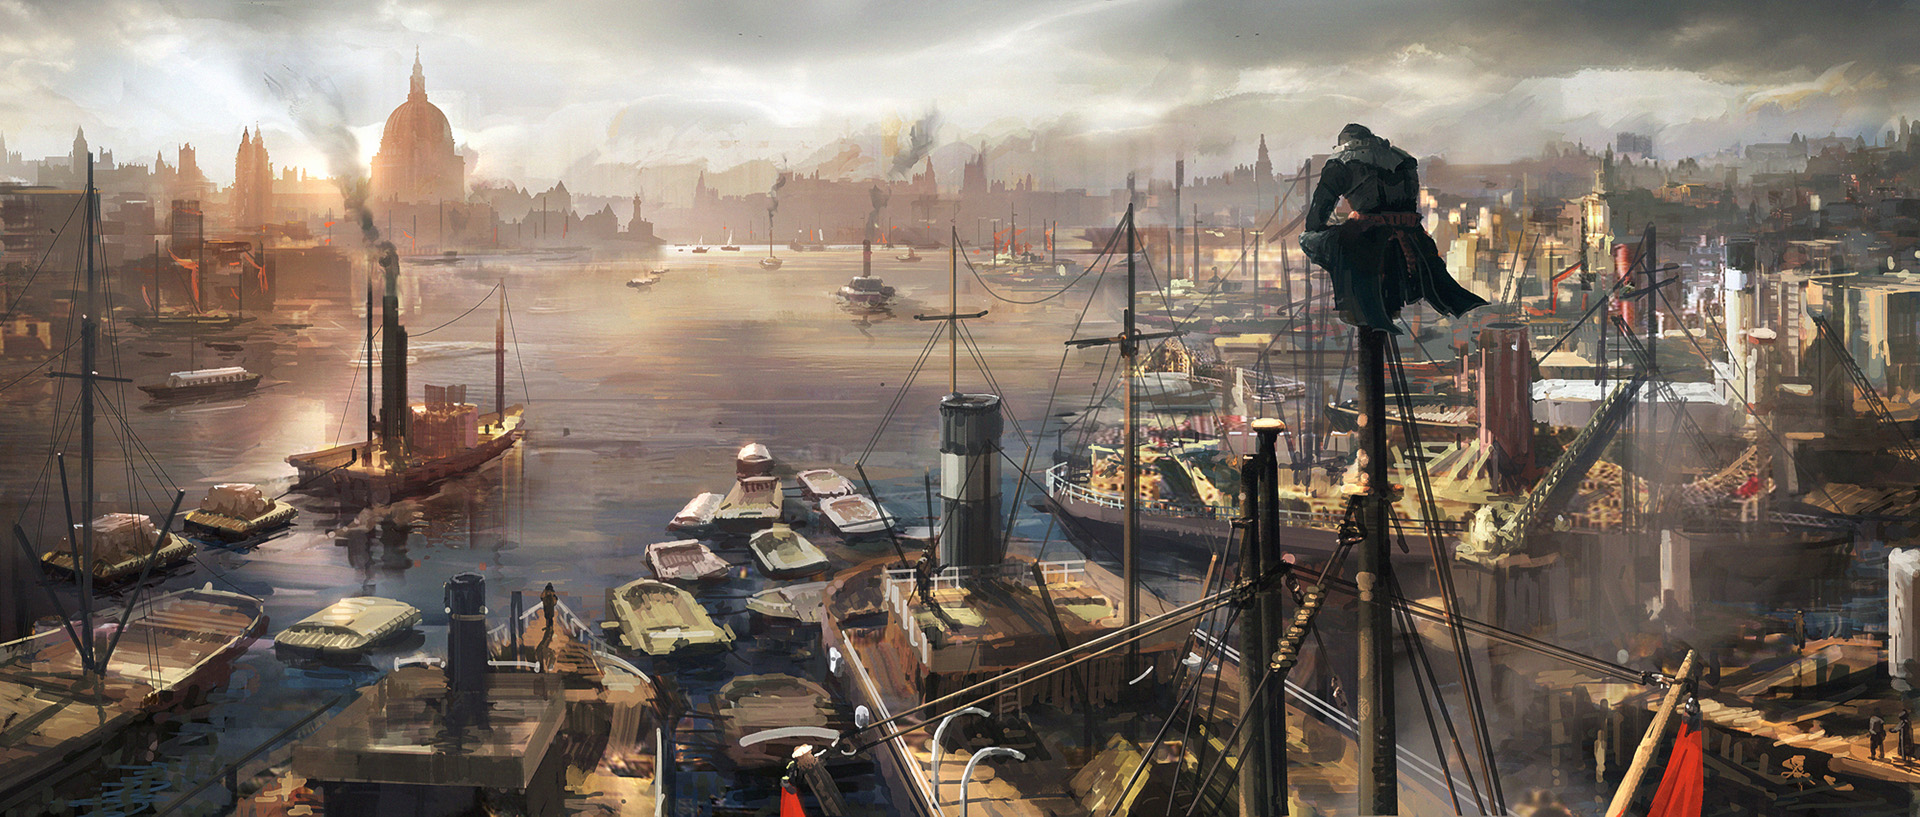 Assassin's Creed Syndicate - VGProfessional Review (32)